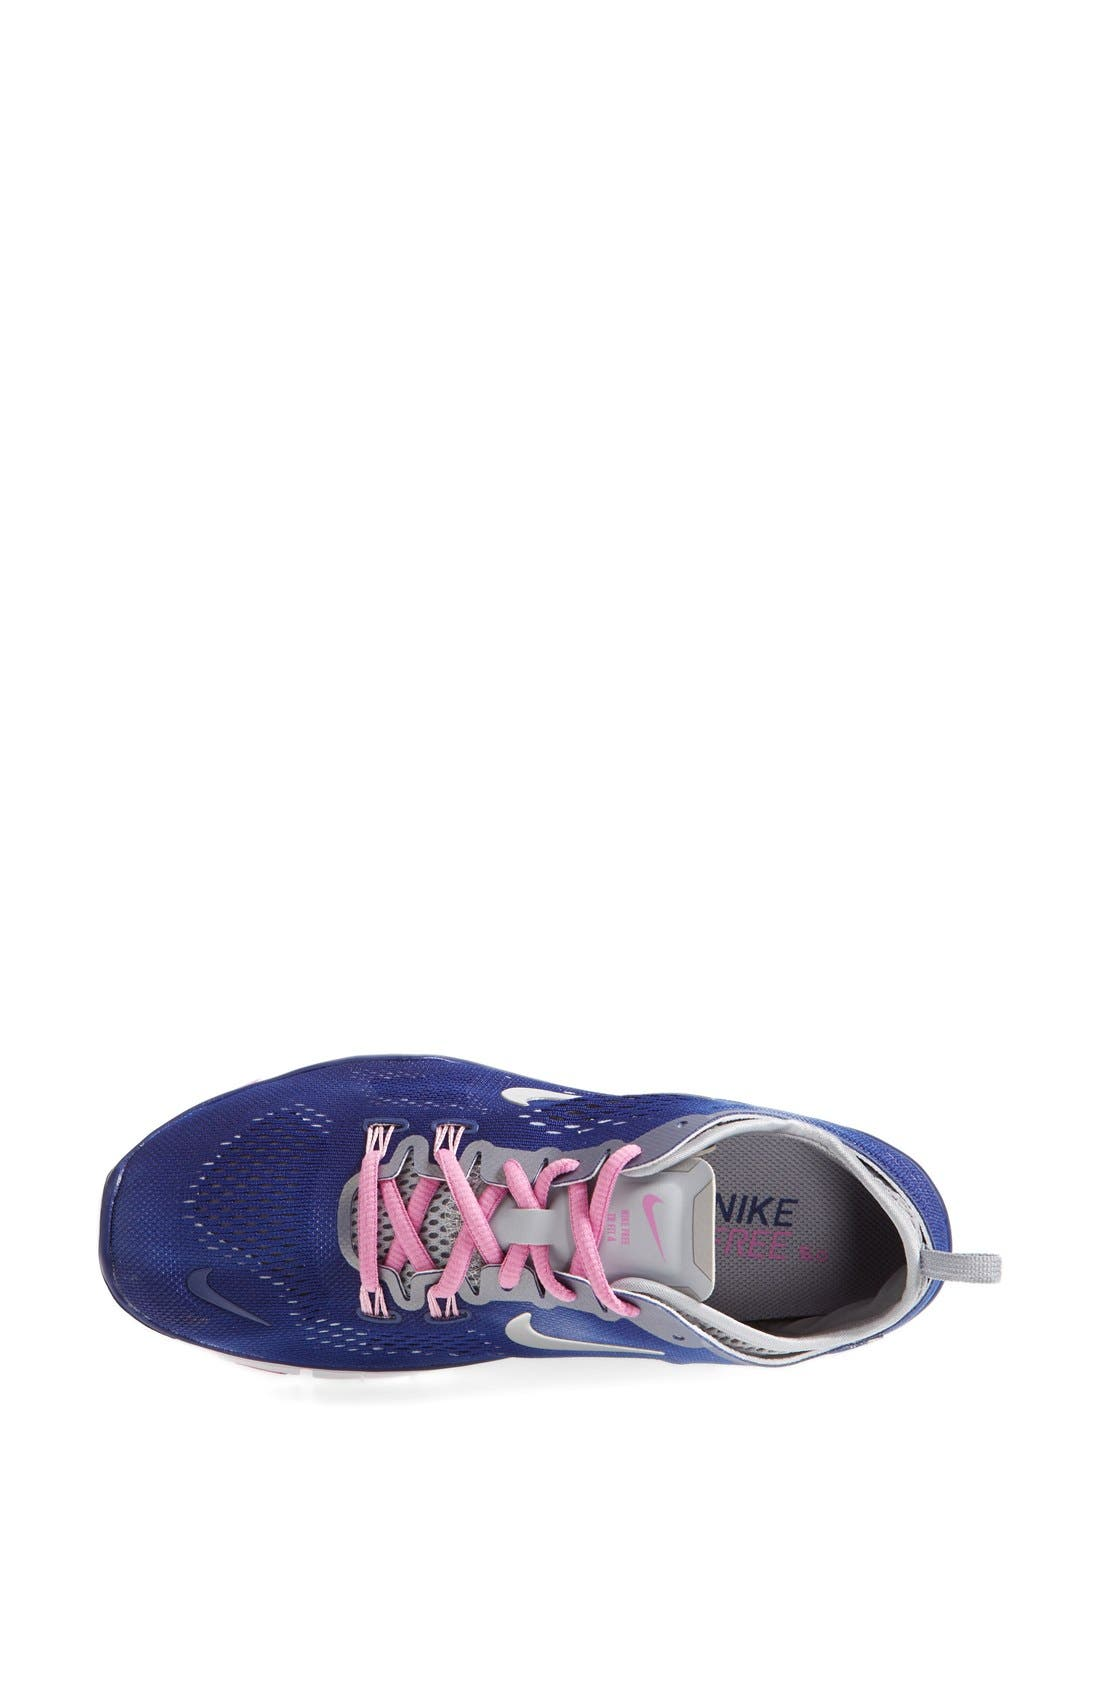 Alternate Image 3  - Nike 'Free 5.0 Fit' Tie Dye Training Shoe (Women)